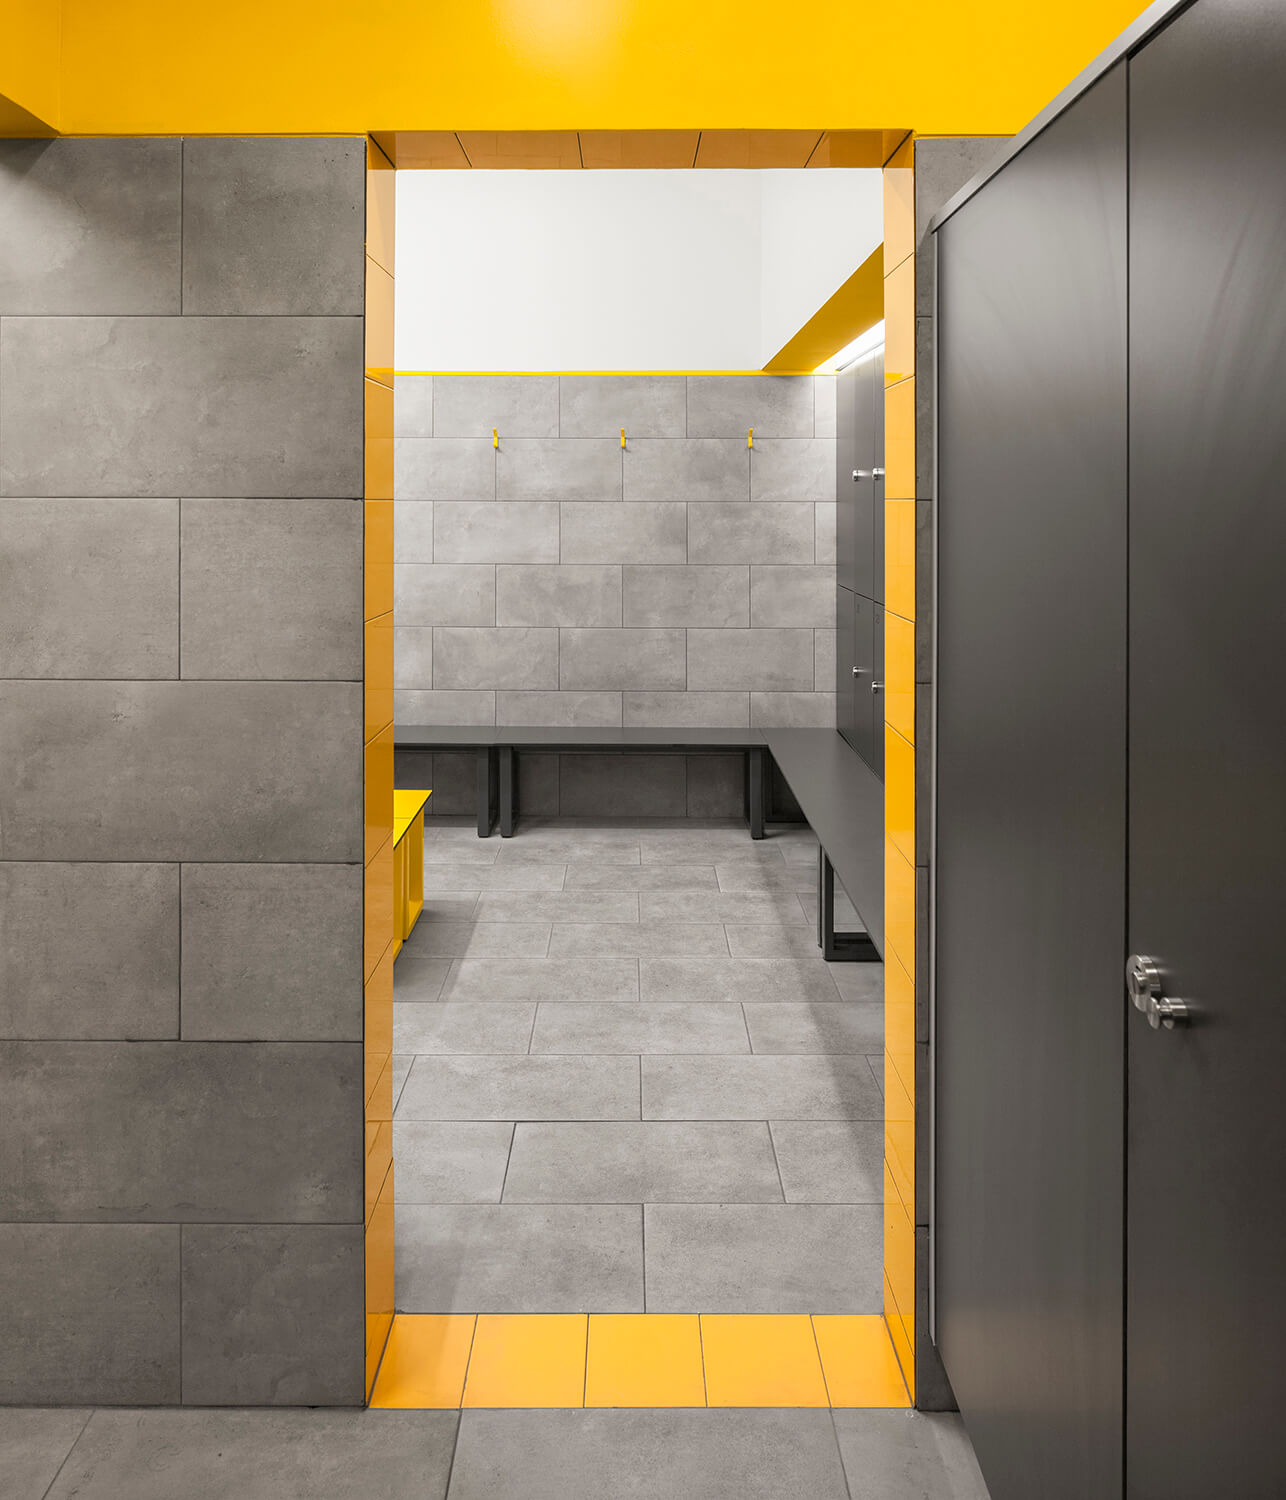 Detail Of The Passage Frame Between The Shower And The